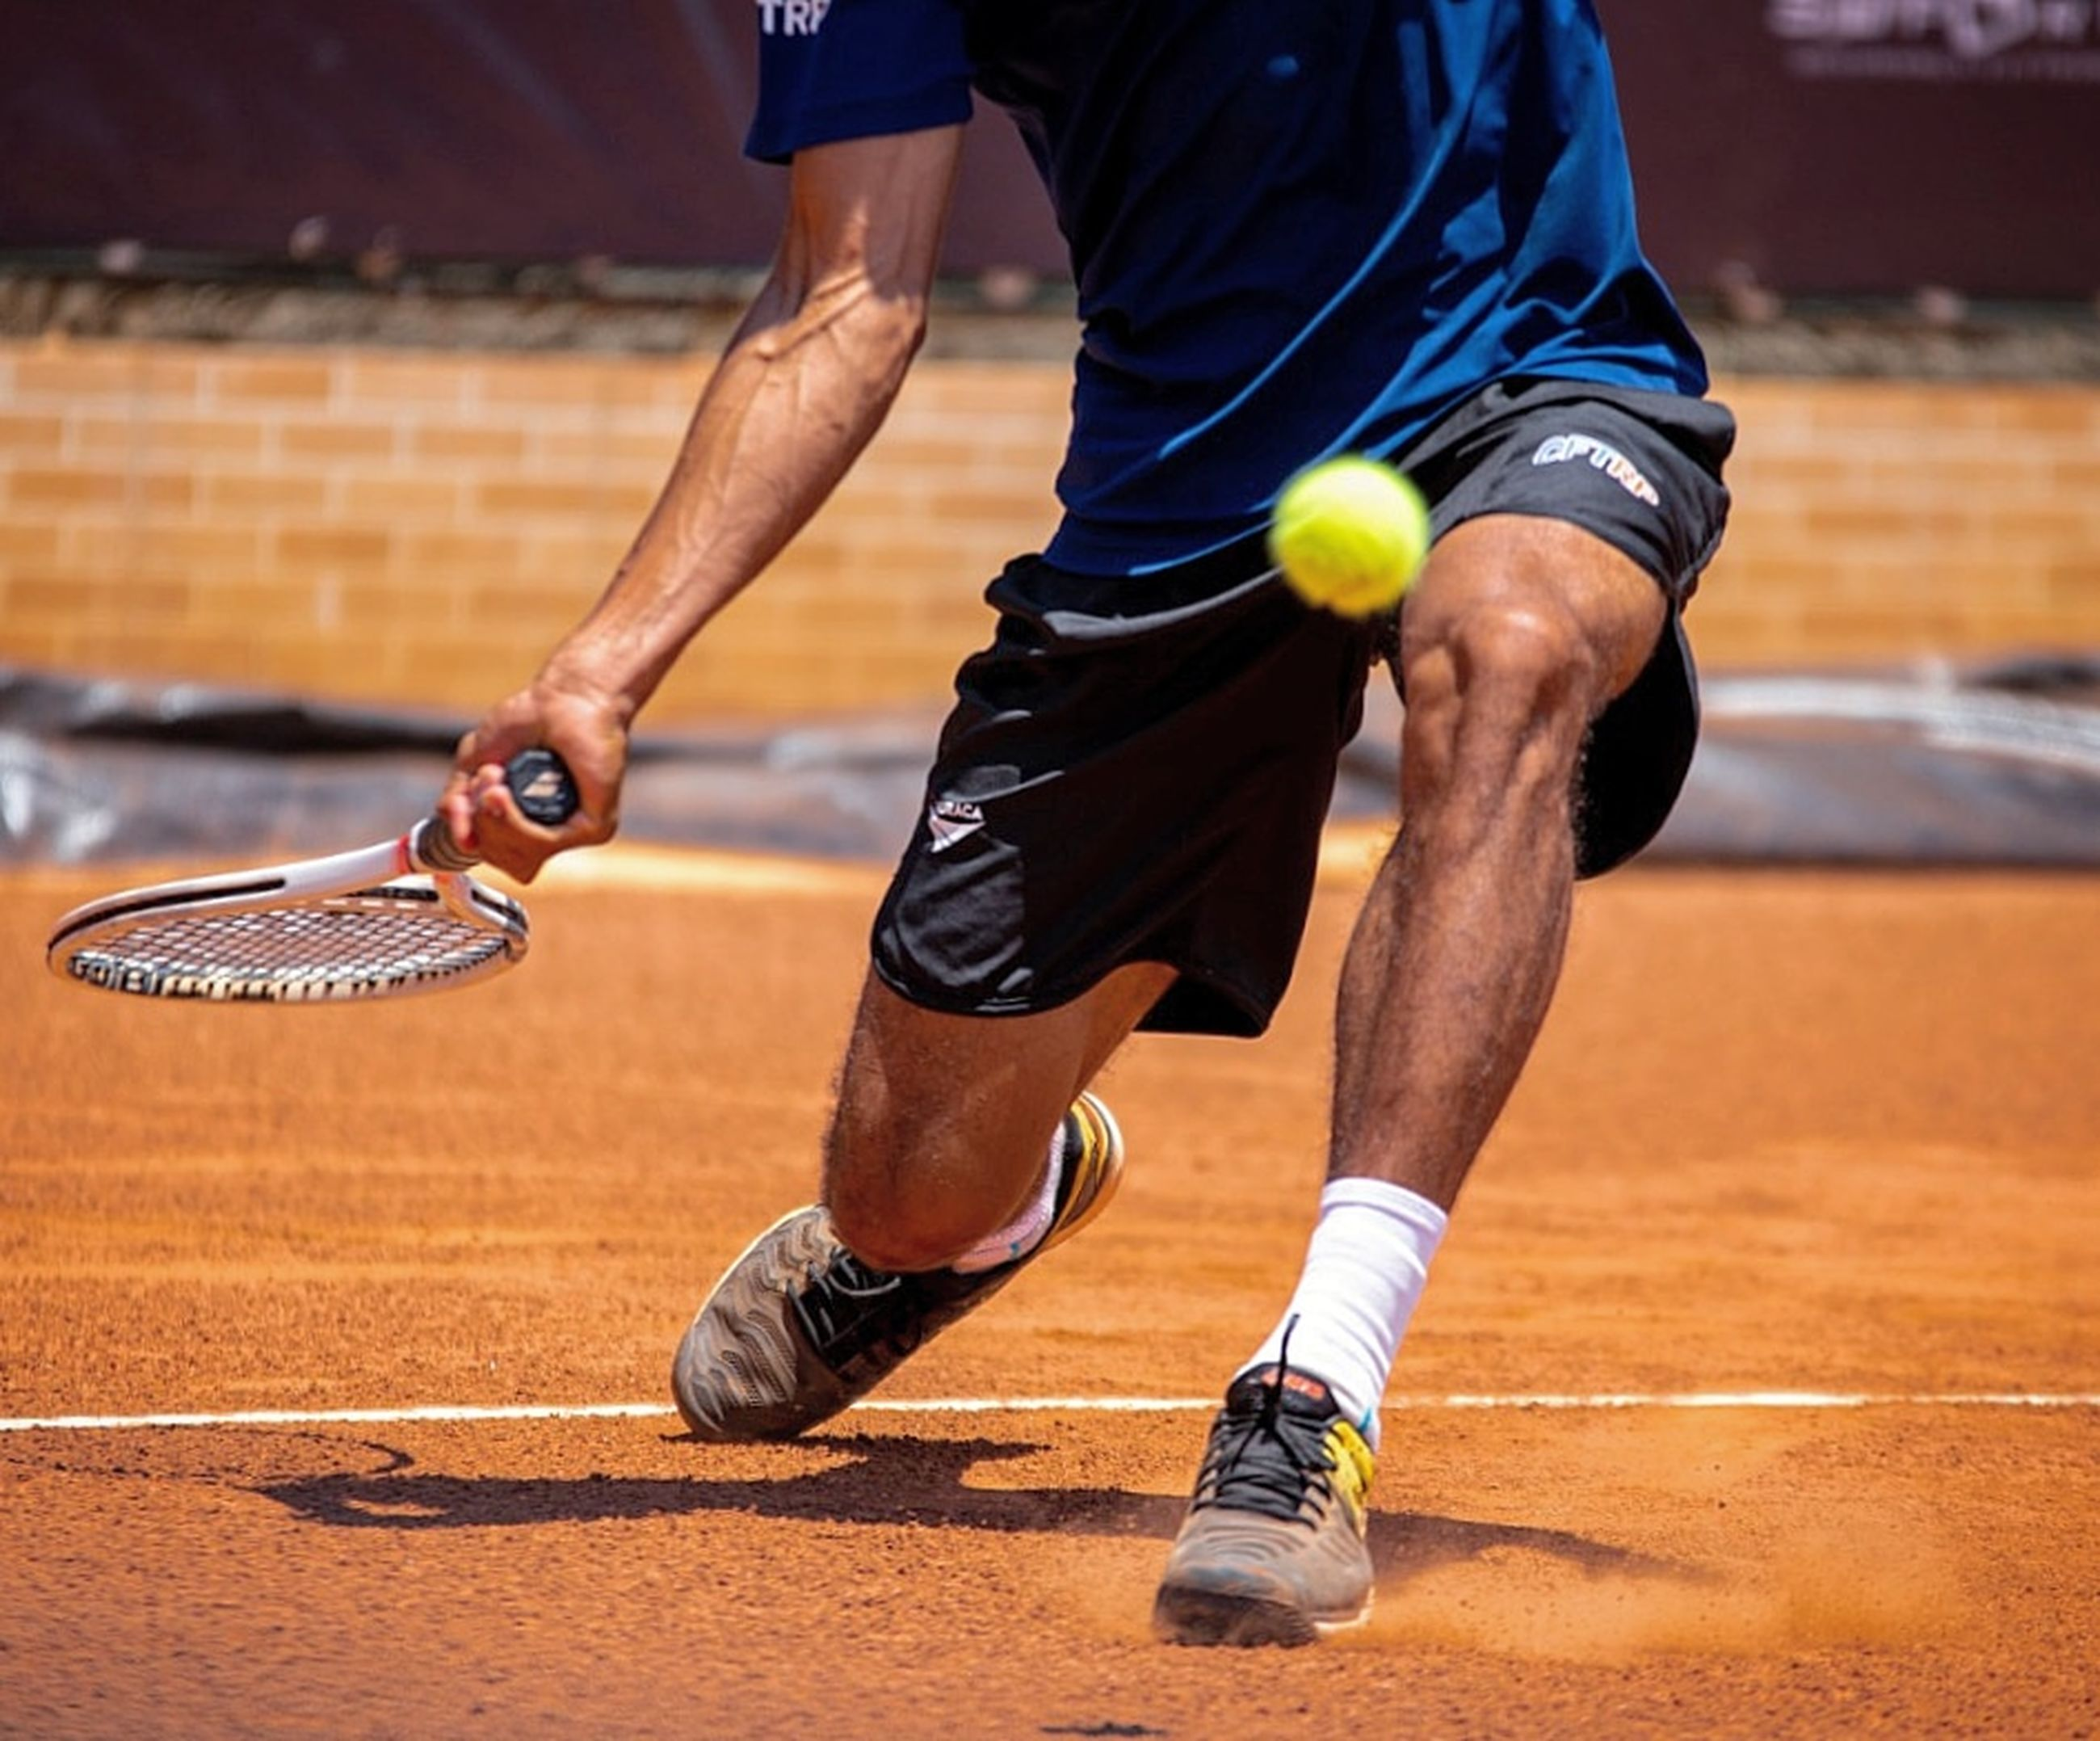 sport, athlete, playing, motion, competition, men, ball, court, competitive sport, one person, activity, vitality, lifestyles, exercising, sportsman, real people, clothing, holding, human body part, skill, tennis racket, hitting